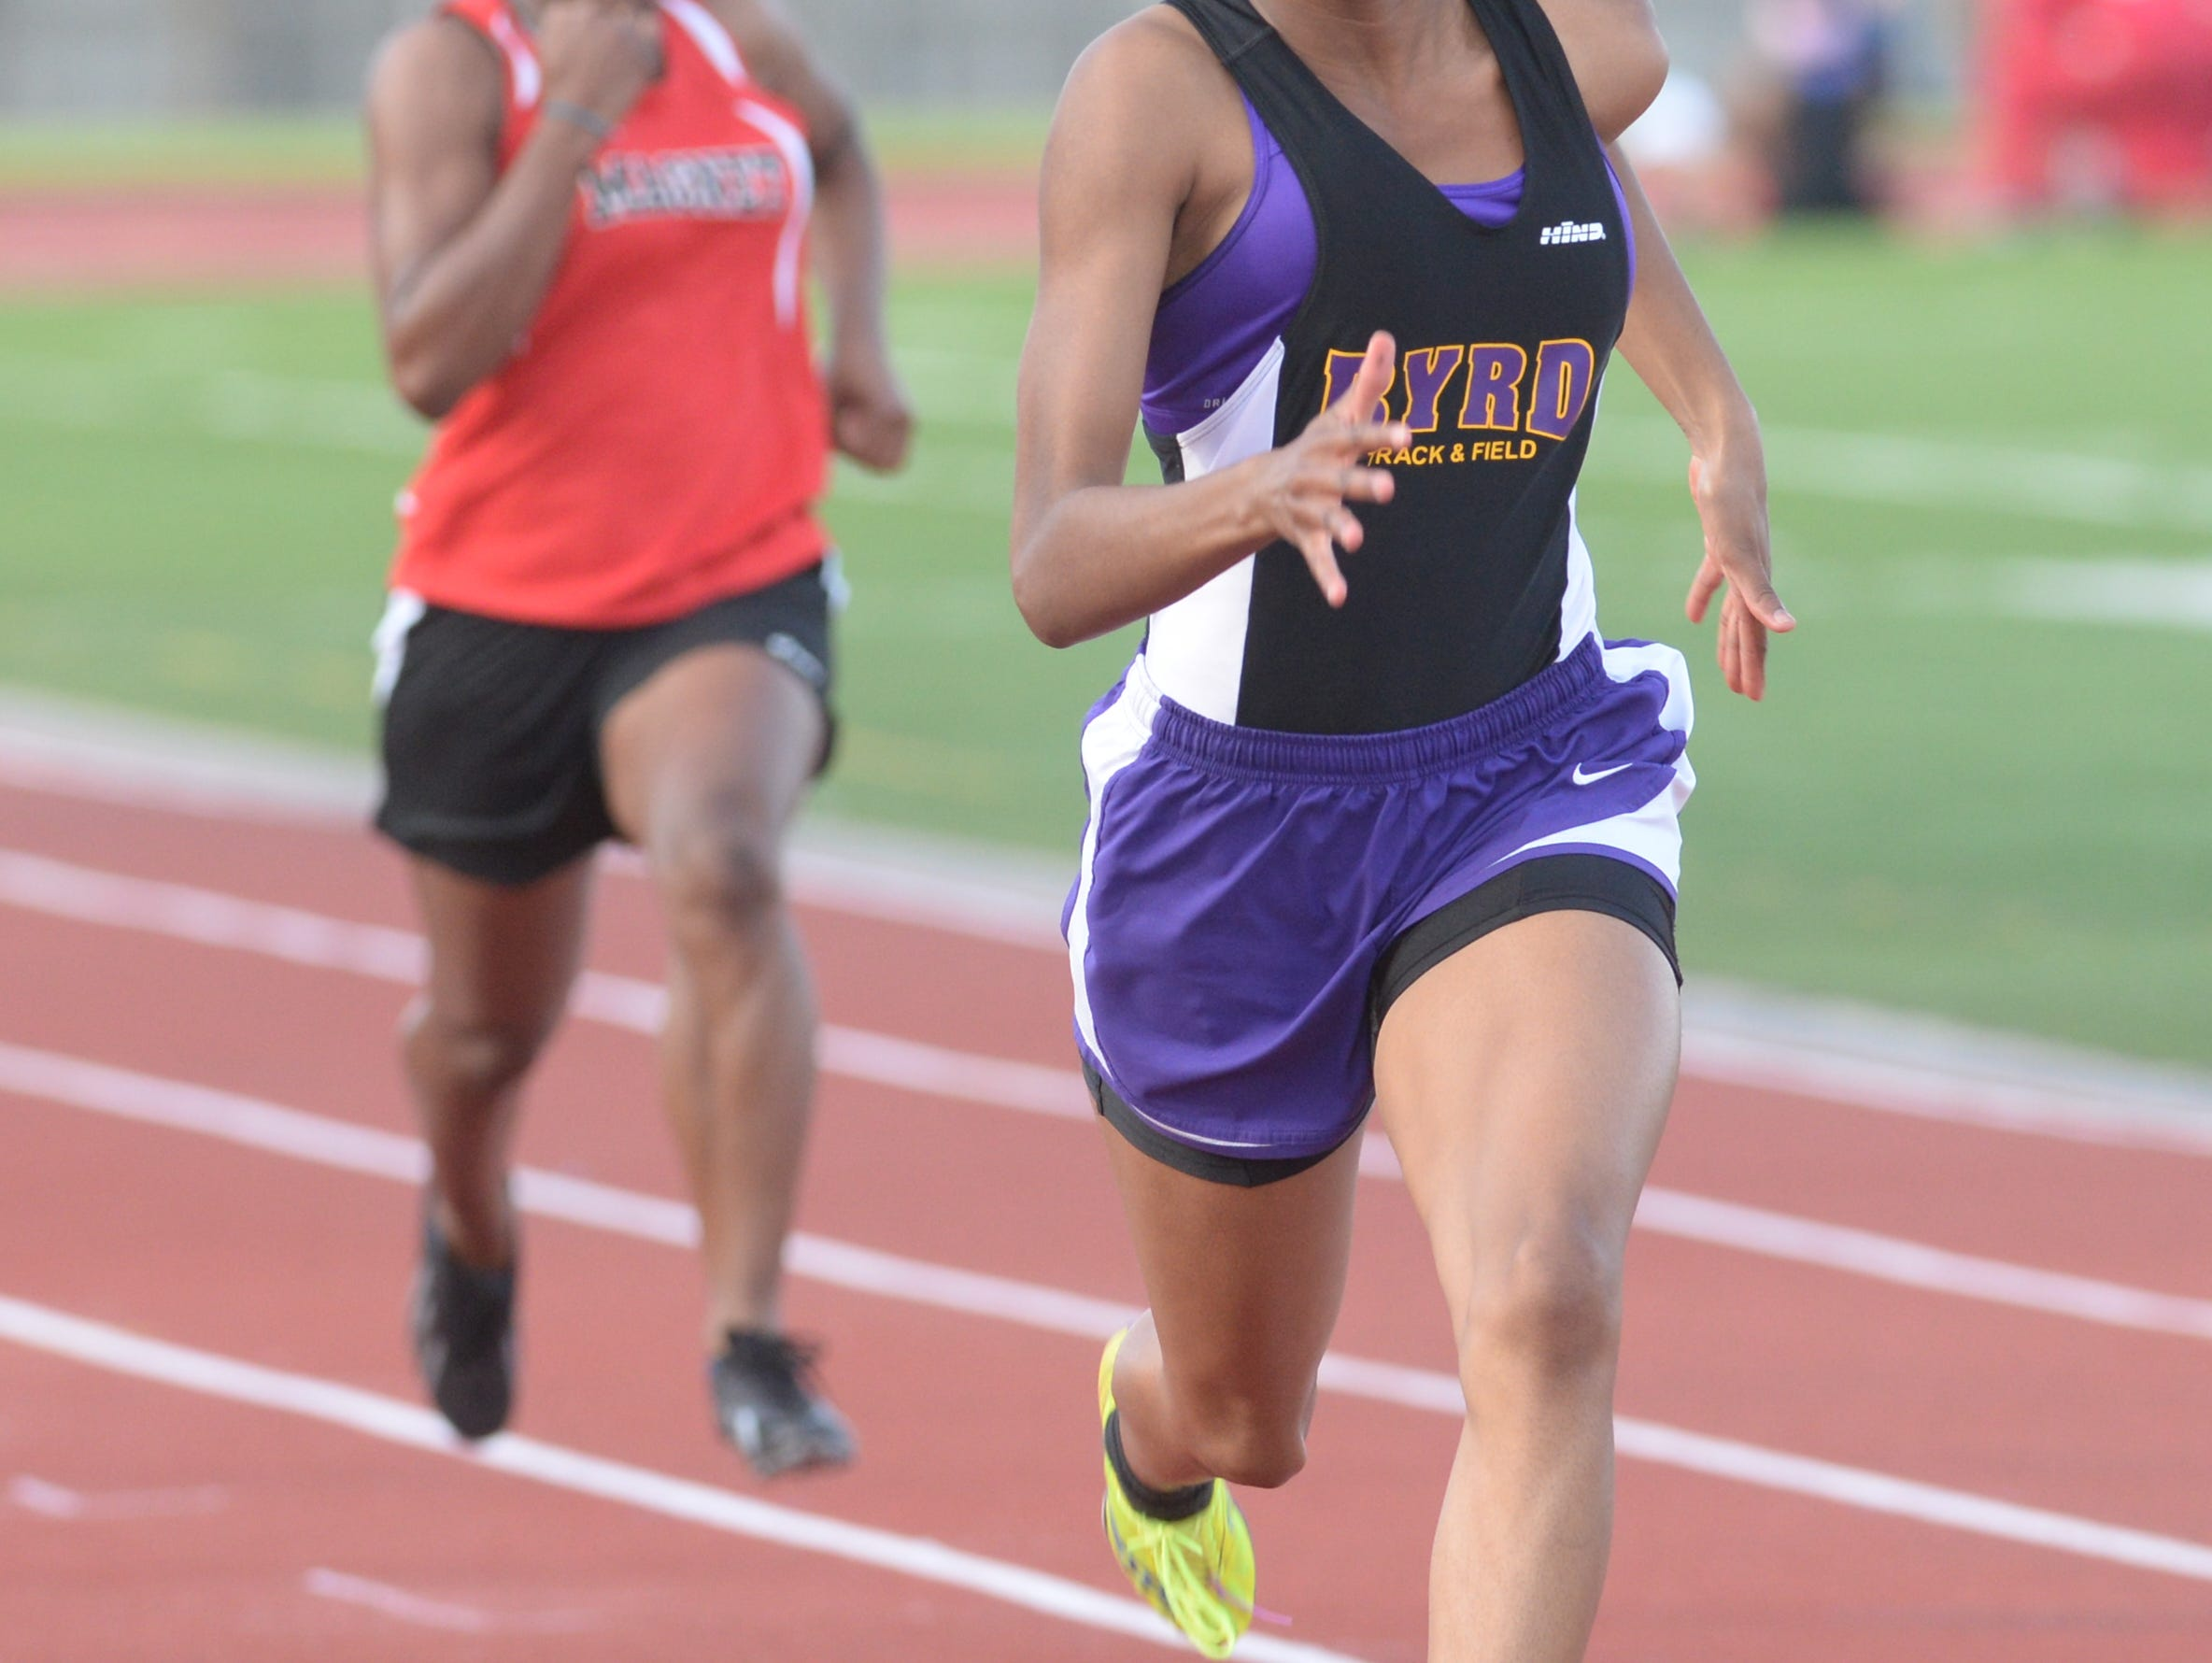 Byrd's Kyah Loyd takes a commanding lead in her 100M dash heat at the Shreveport relays.